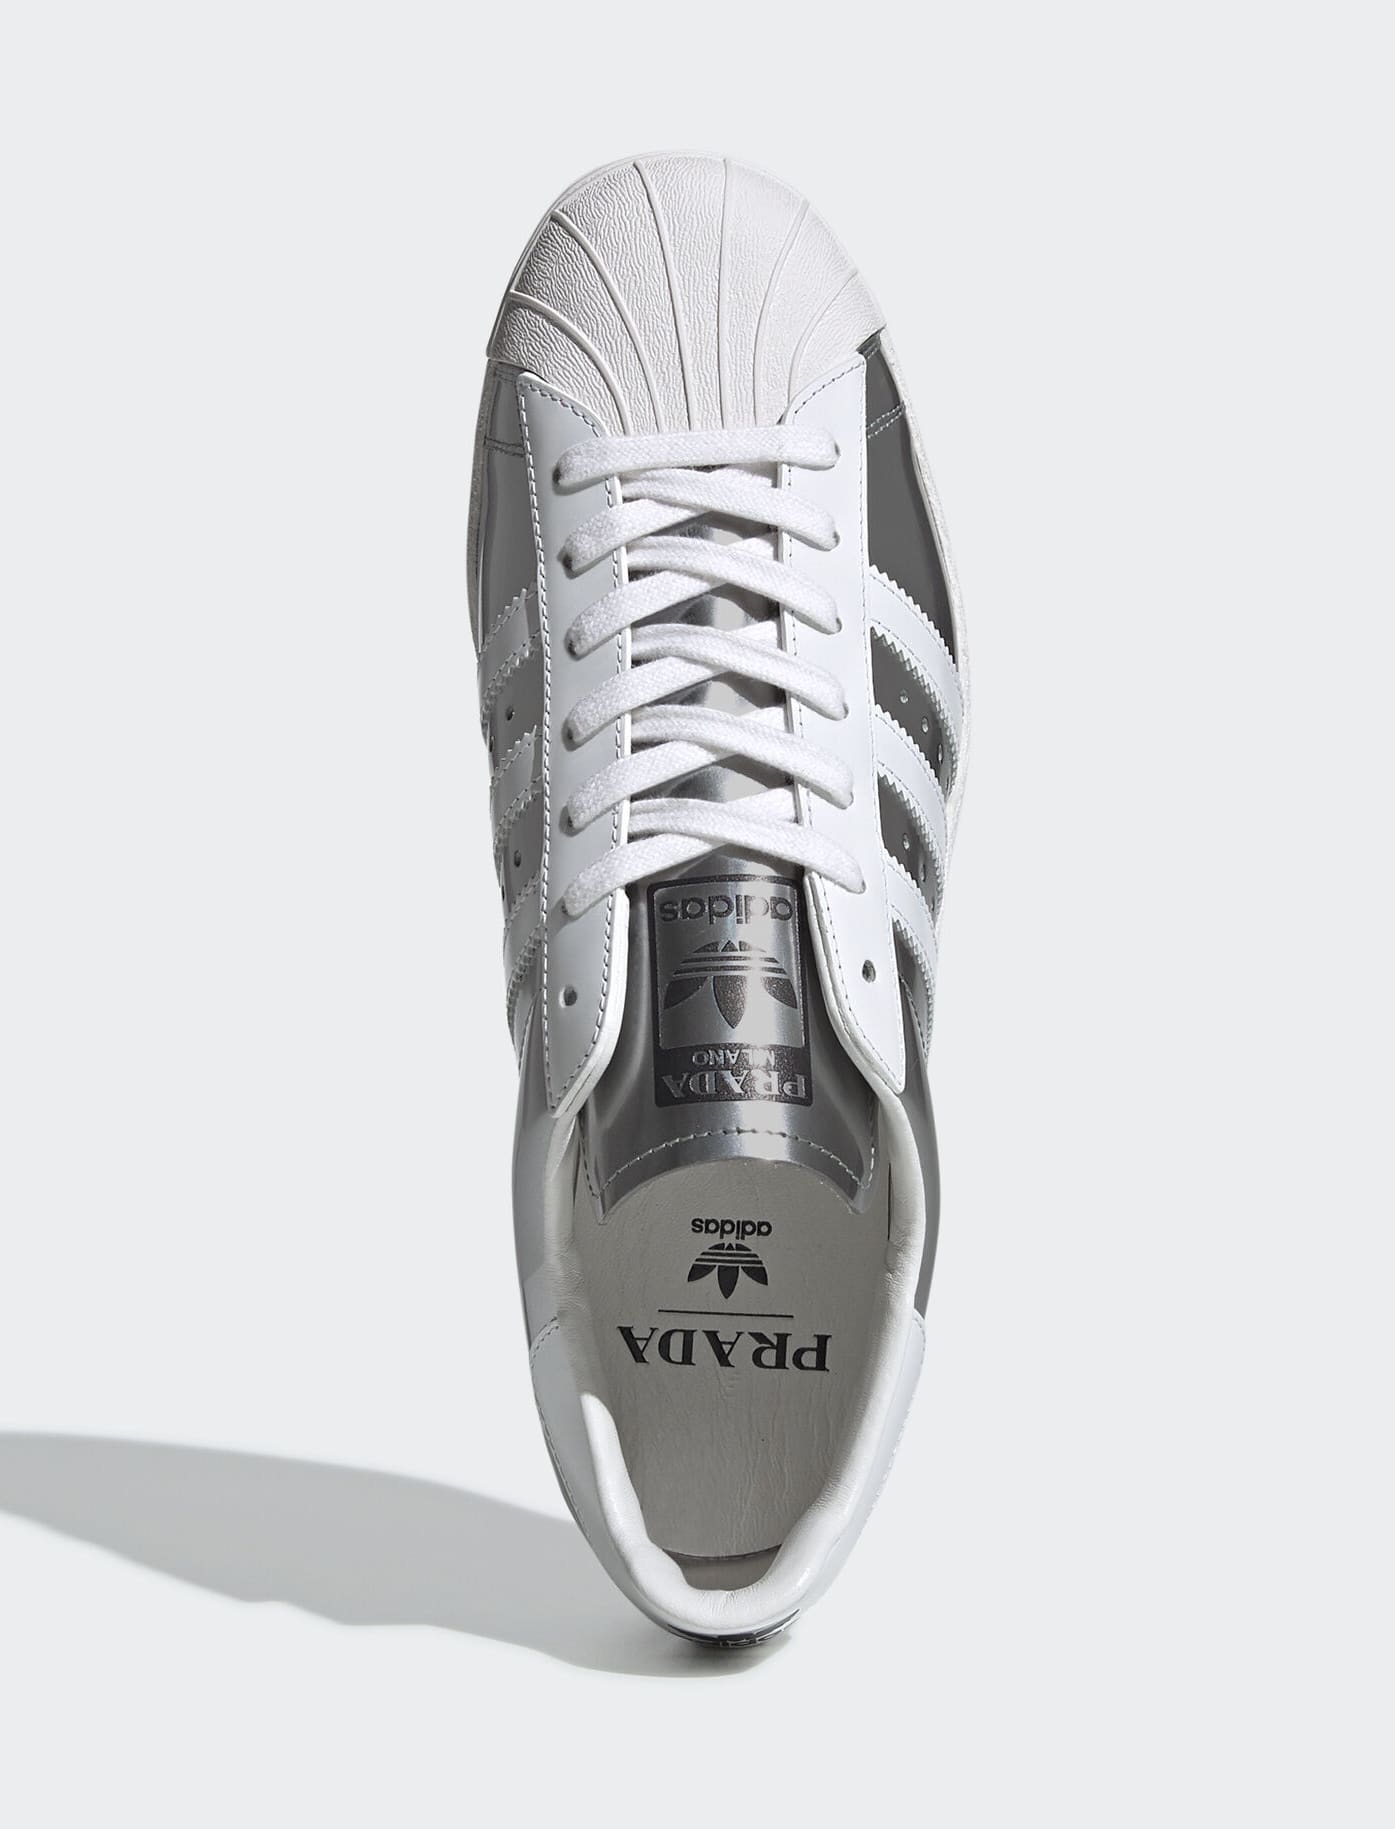 Prada x Adidas Superstar 'Silver Metallic' FX4546 (Top)